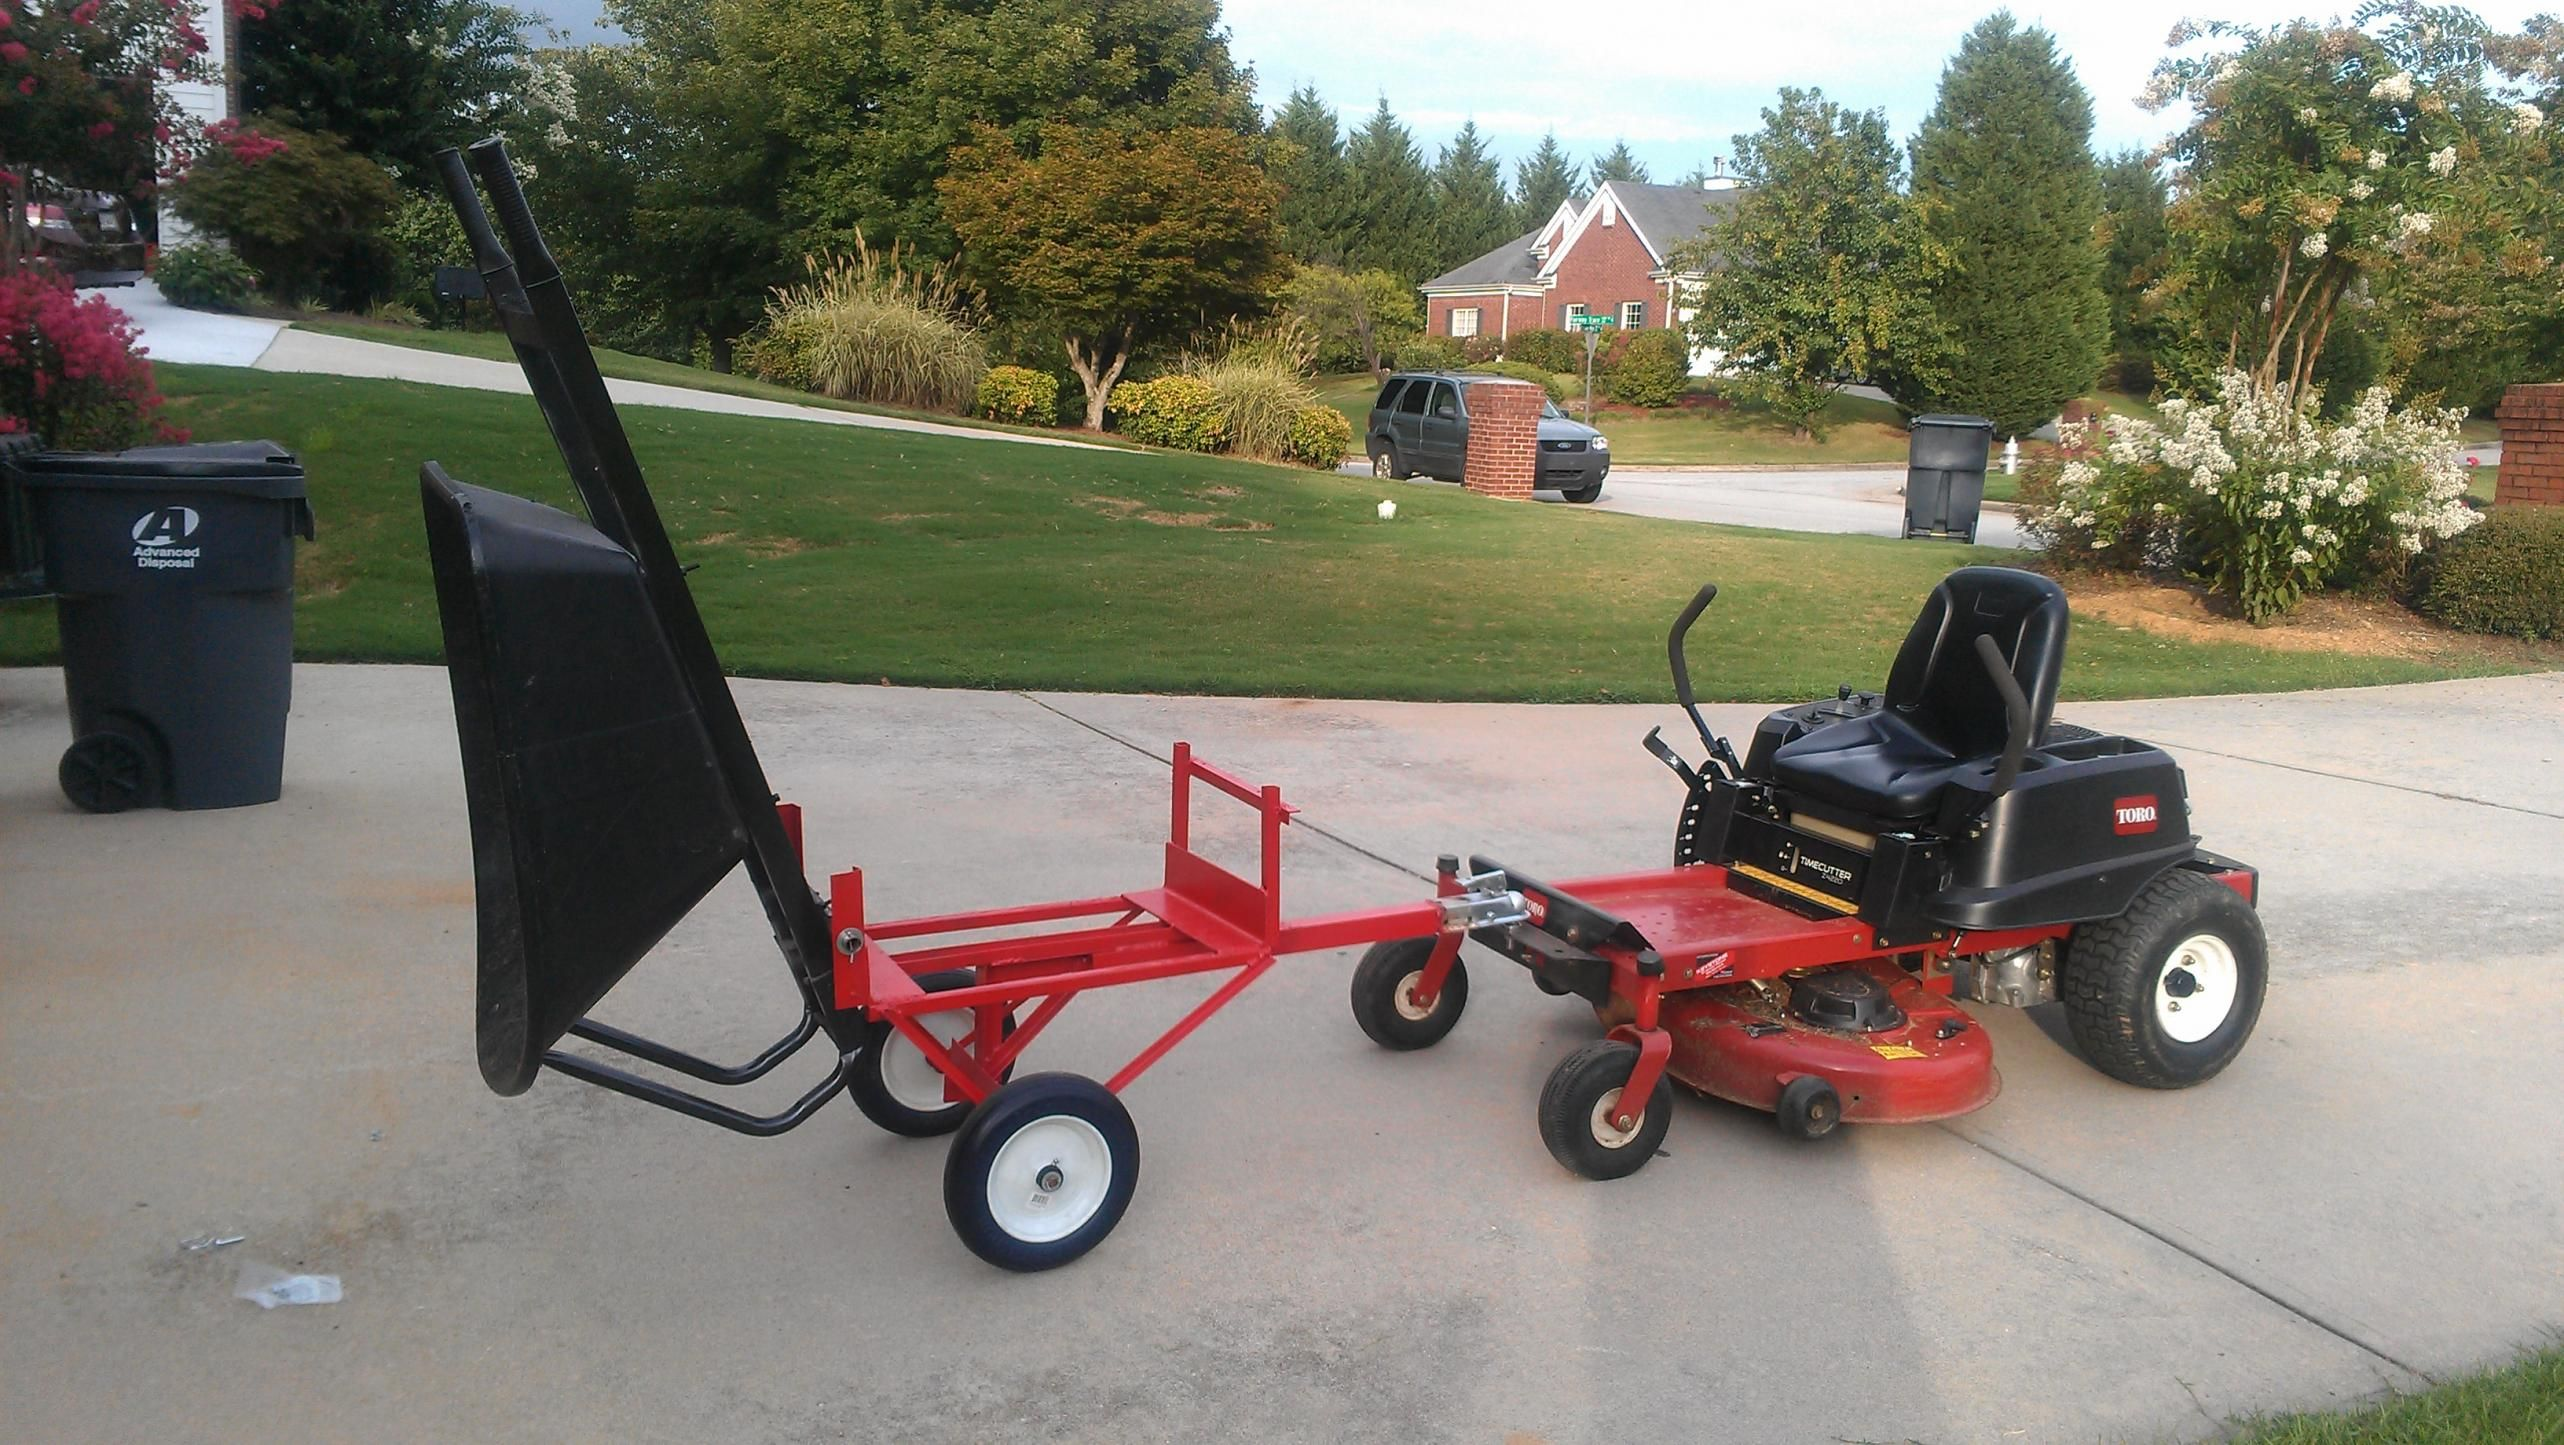 Multifuncional Cart Powered Wheel Barrow By Kenrizza If You Combine A Zero Turning Mower With A Front Wheelbarrow Bobcat Mowers Garden Tractor Attachments